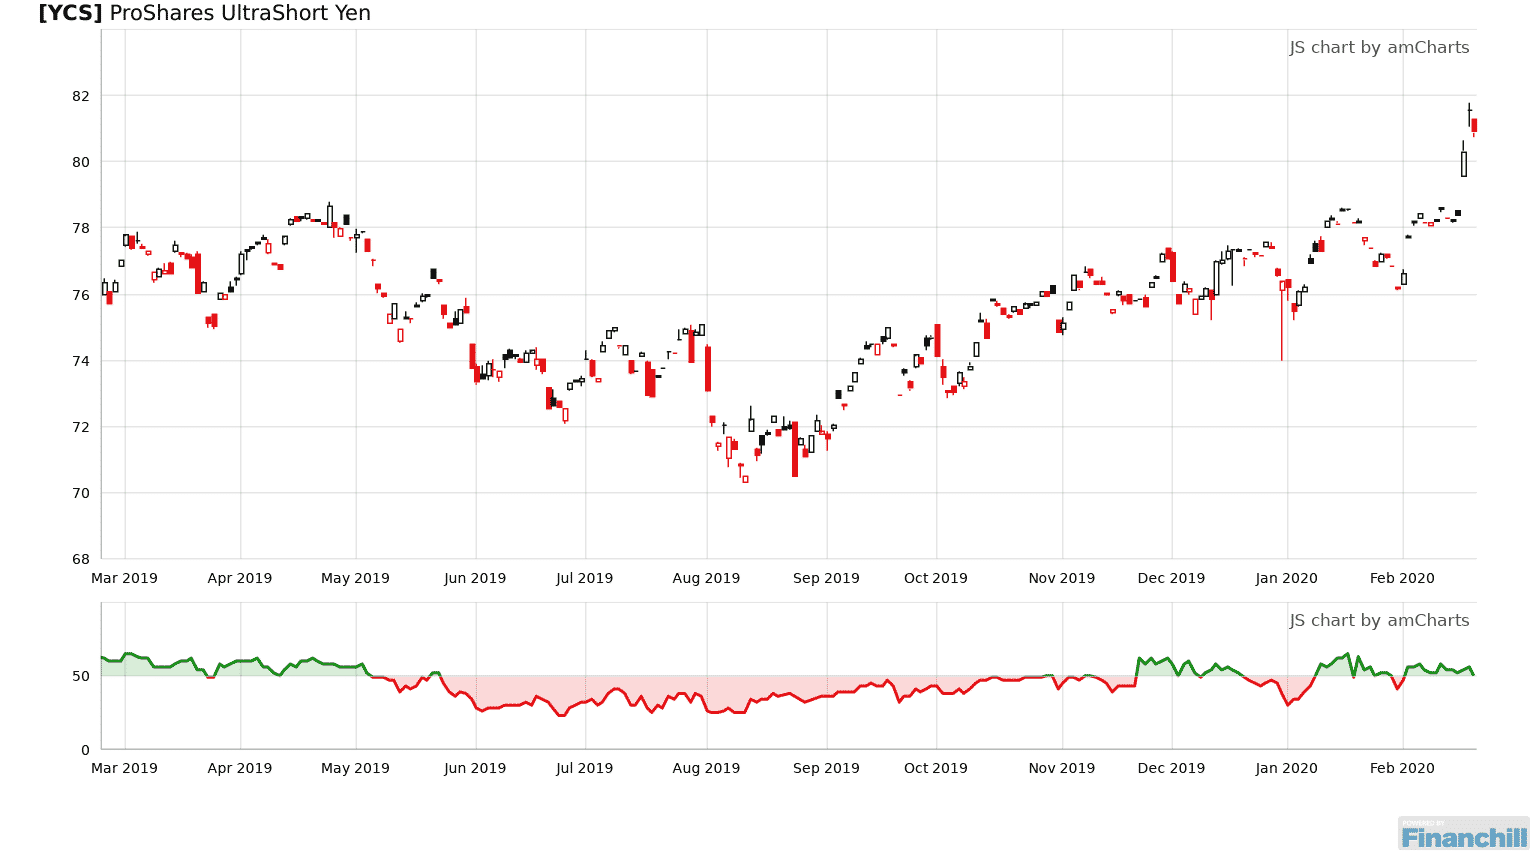 Ycs Is Rated A Sell Since February 21 2020 And Is 0 Below Its Median Level Http Bit Ly 2dhuycn In 2020 Chart Line Chart Diagram